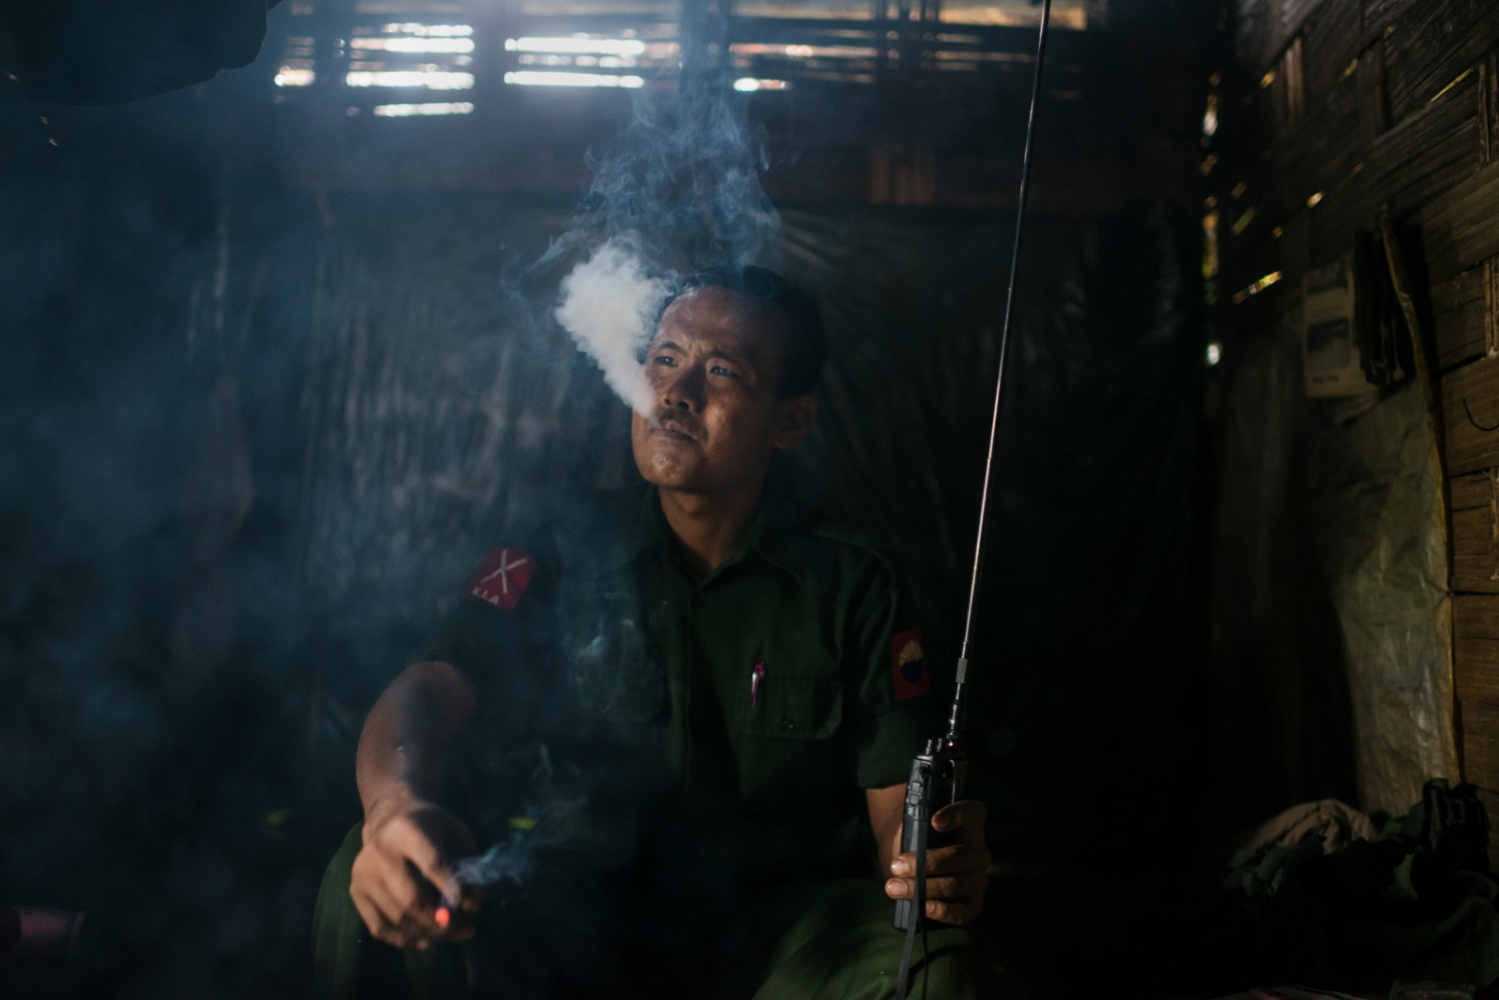 Lieutenant Brang Seng of the Kachin Independence Army having a smoke at a base camp near Mai Ja Yang in Kachin State, Myanmar.